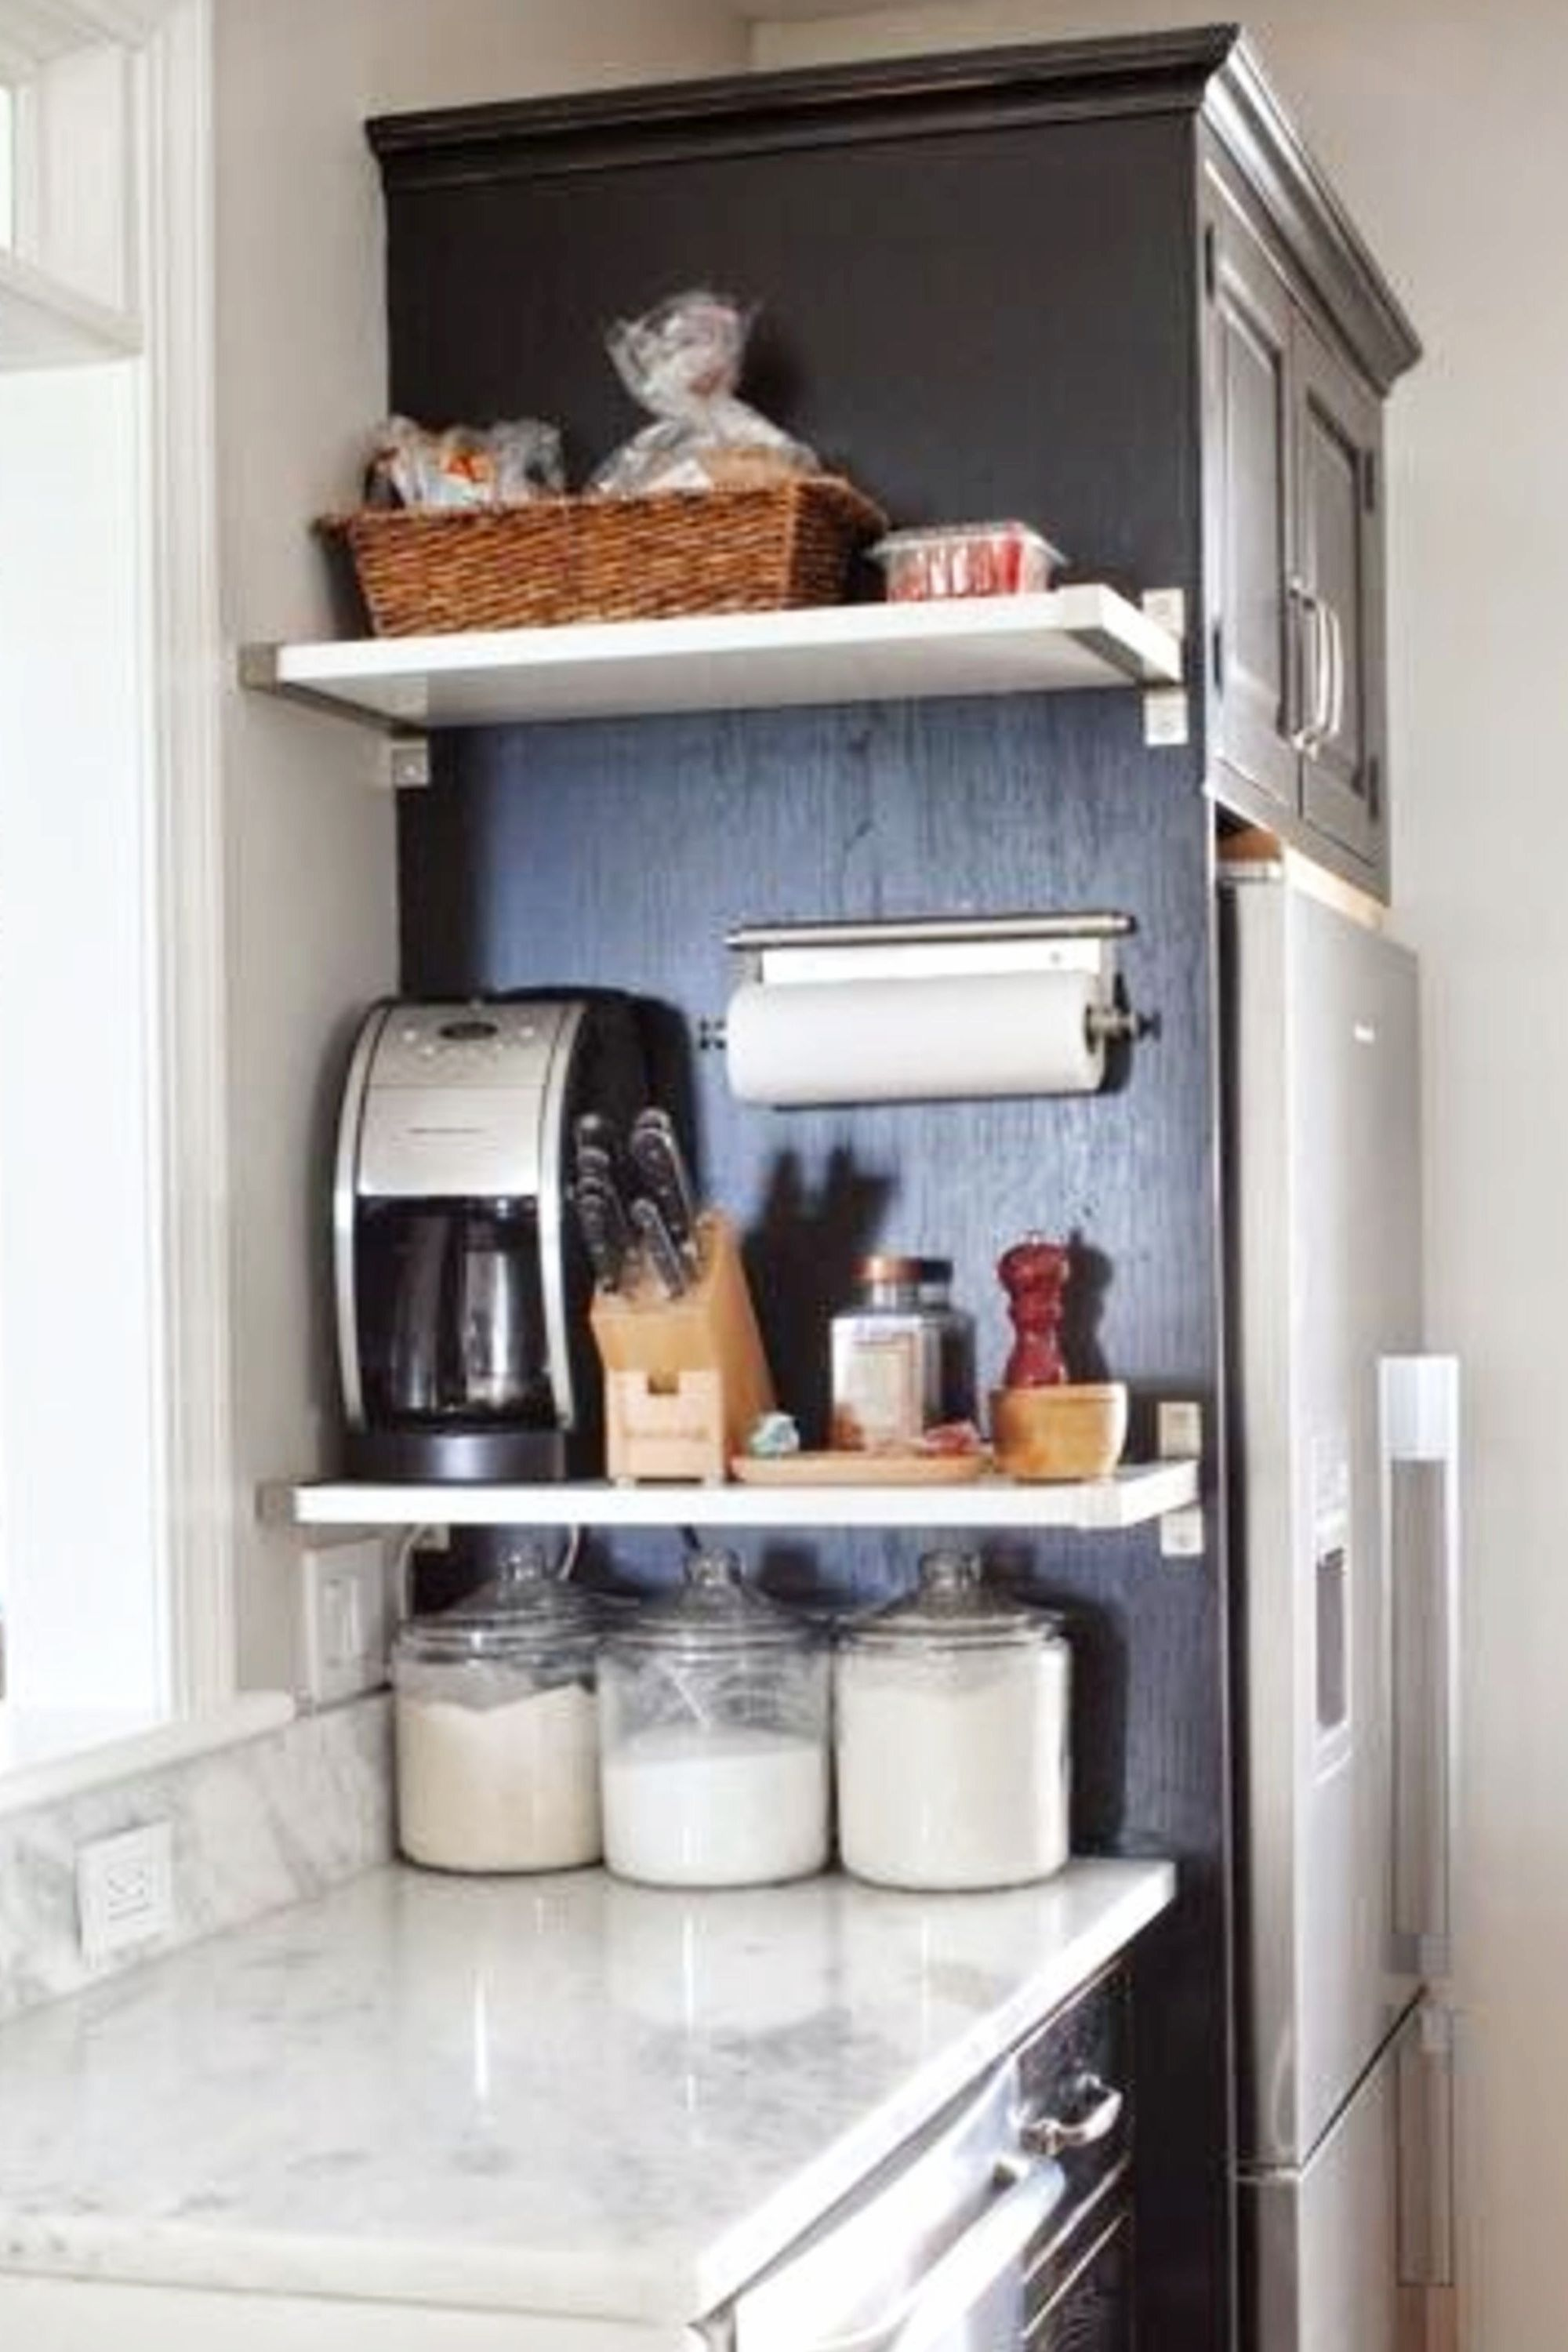 How To Arrange Appliances in Small Kitchens [WITHOUT adding ...